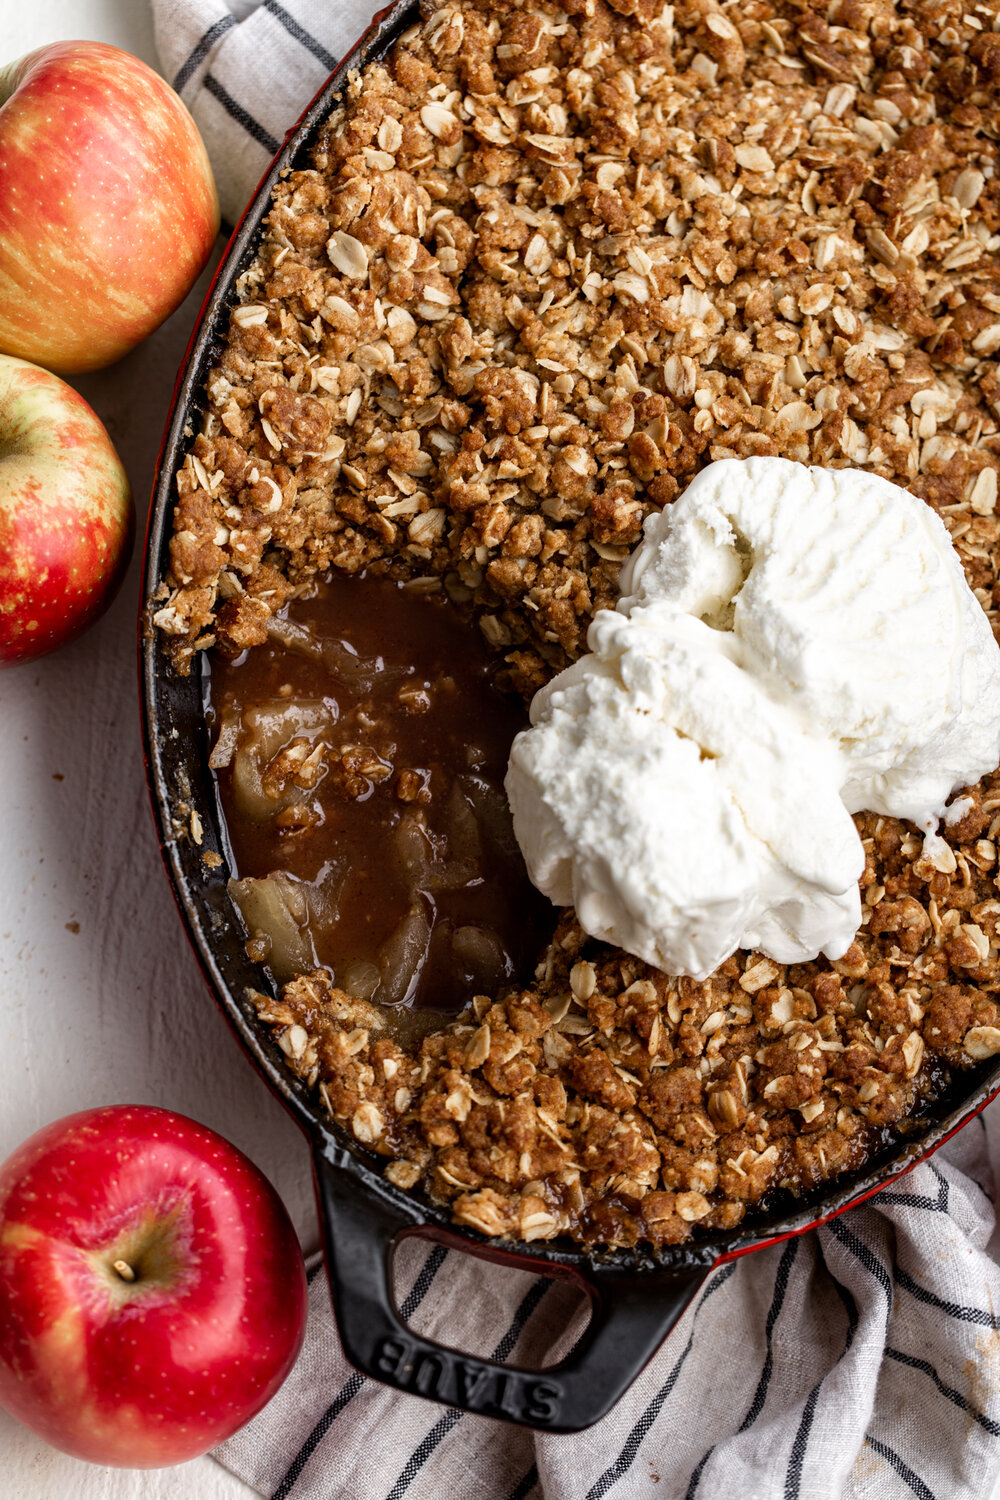 Apple crisp made with sliced honeycrisp apples tossed in cinnamon sugar topped with a crumbly, oat topping. golden brown on top with a scoop of vanilla ice cream and whole apples on the side